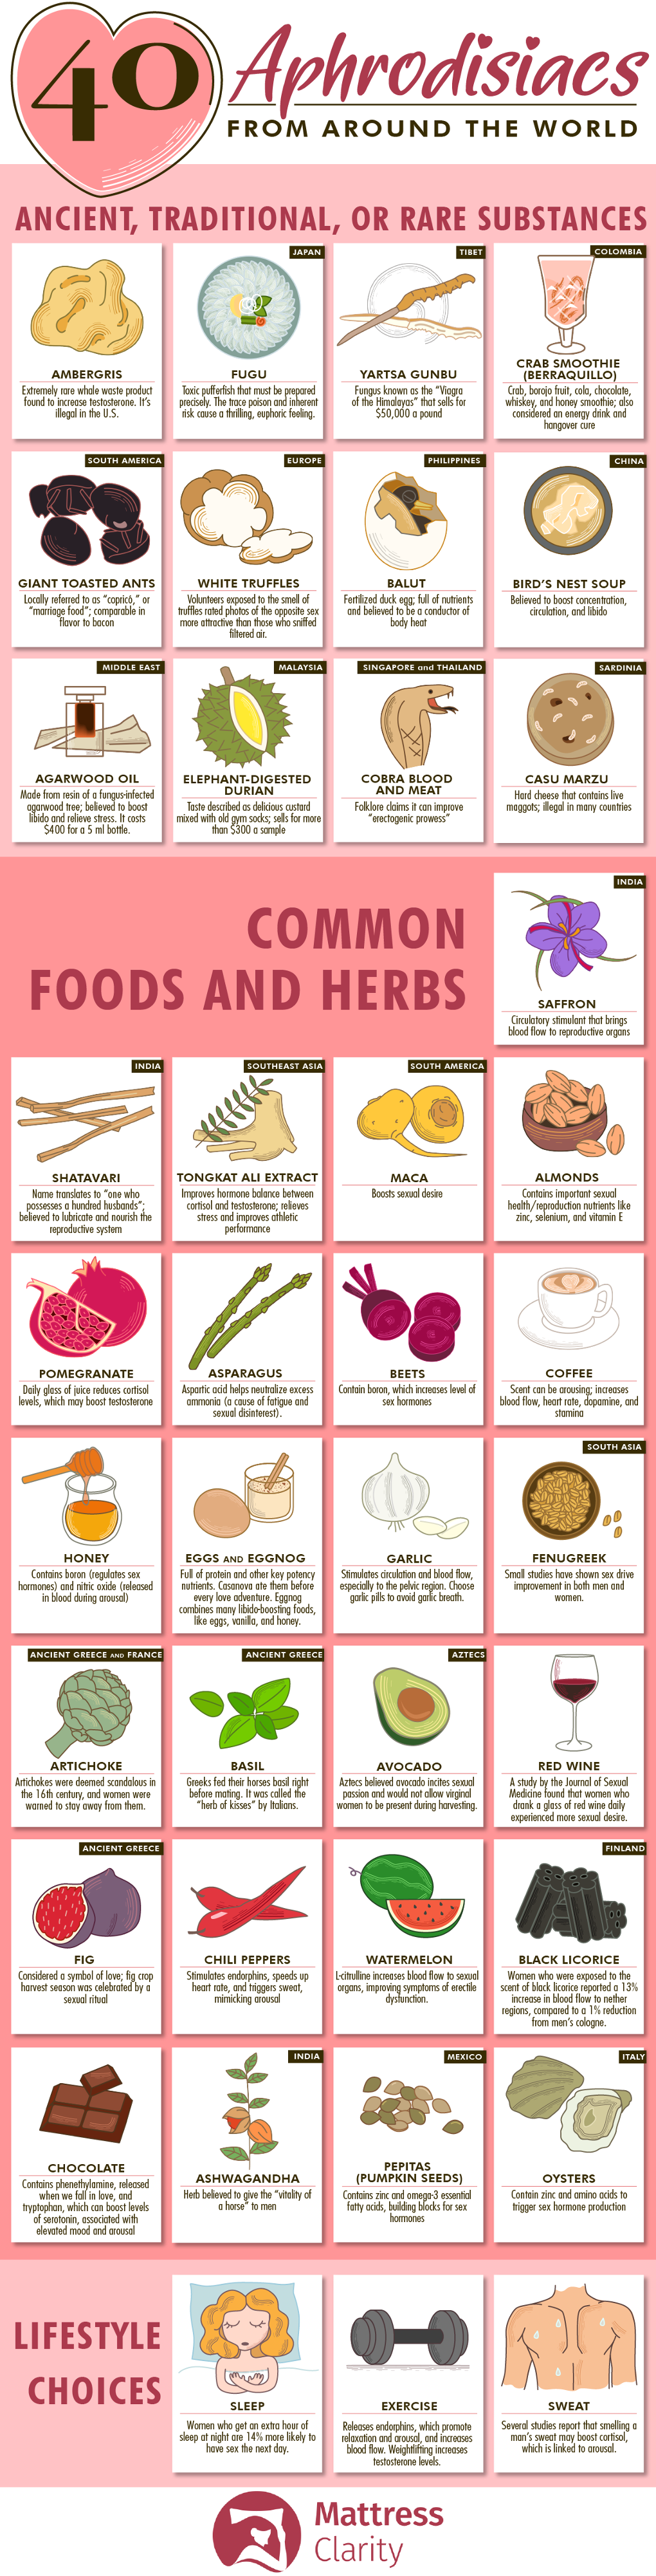 40 Aphrodisiacs From Around the World #infographic